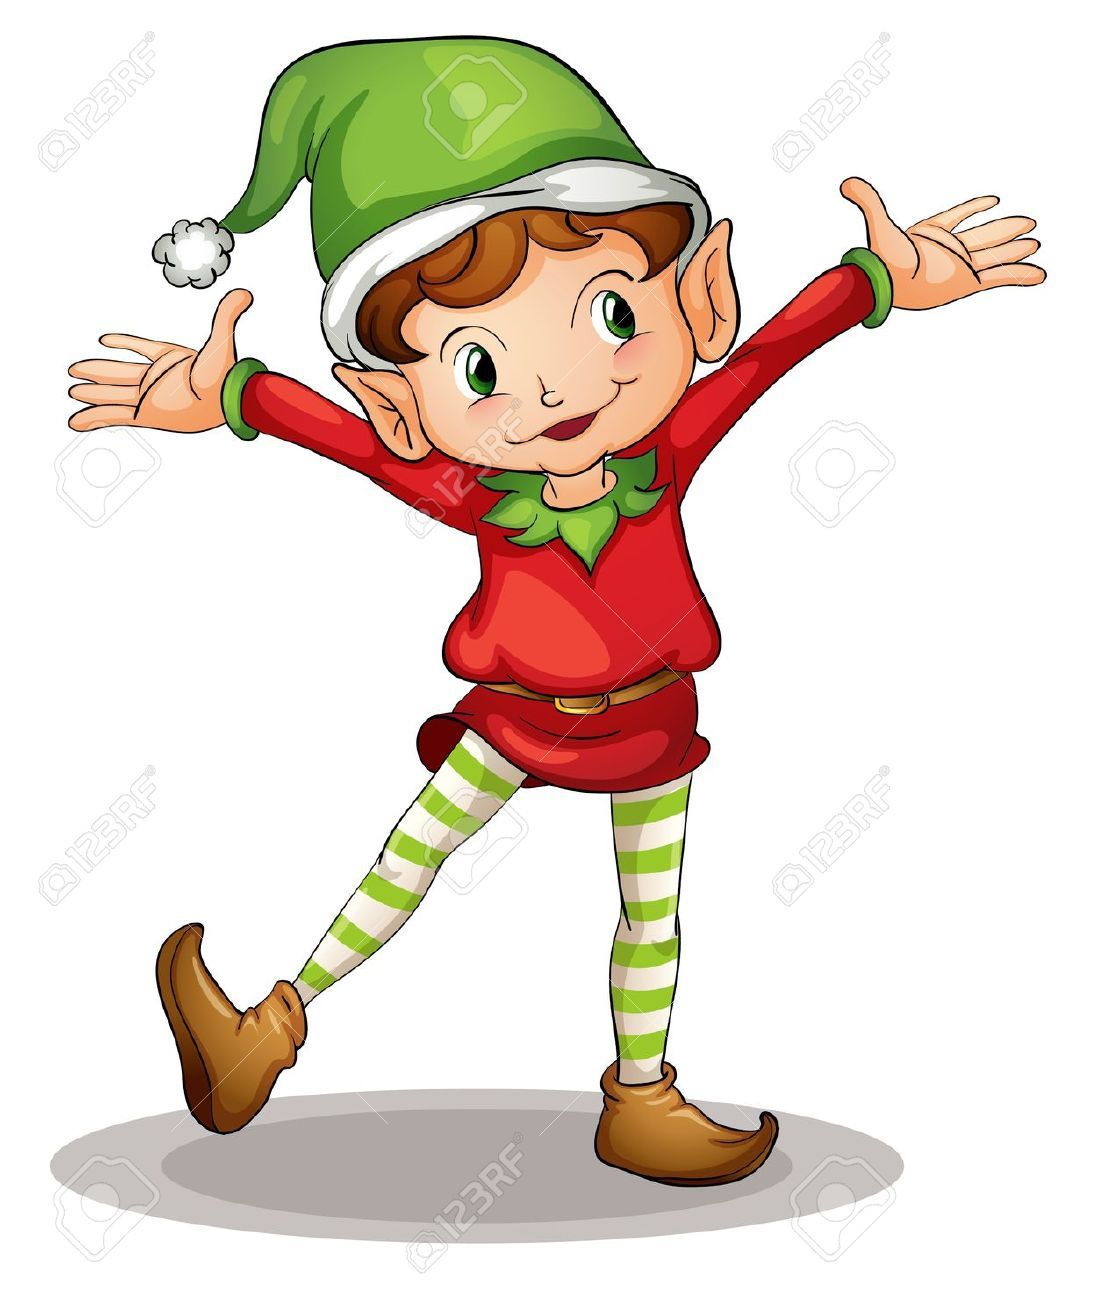 medium resolution of illustration of a christmas elf royalty free cliparts vectors and stock illustration pic 13930683